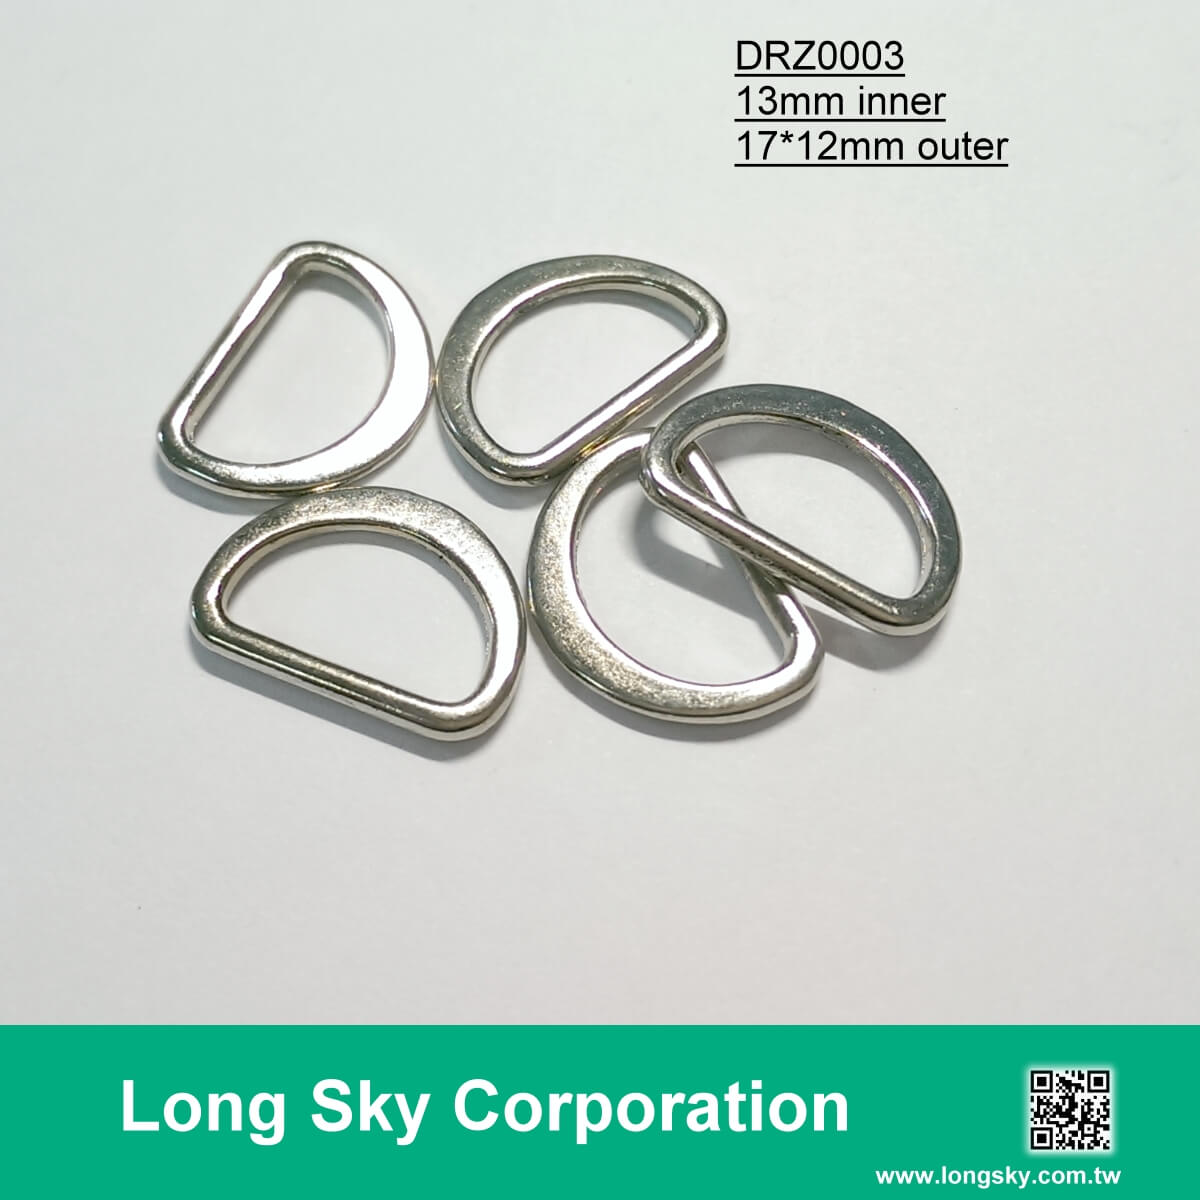 (#DRZ0003/13mm inner) flat D-ring buckle for small strap belt